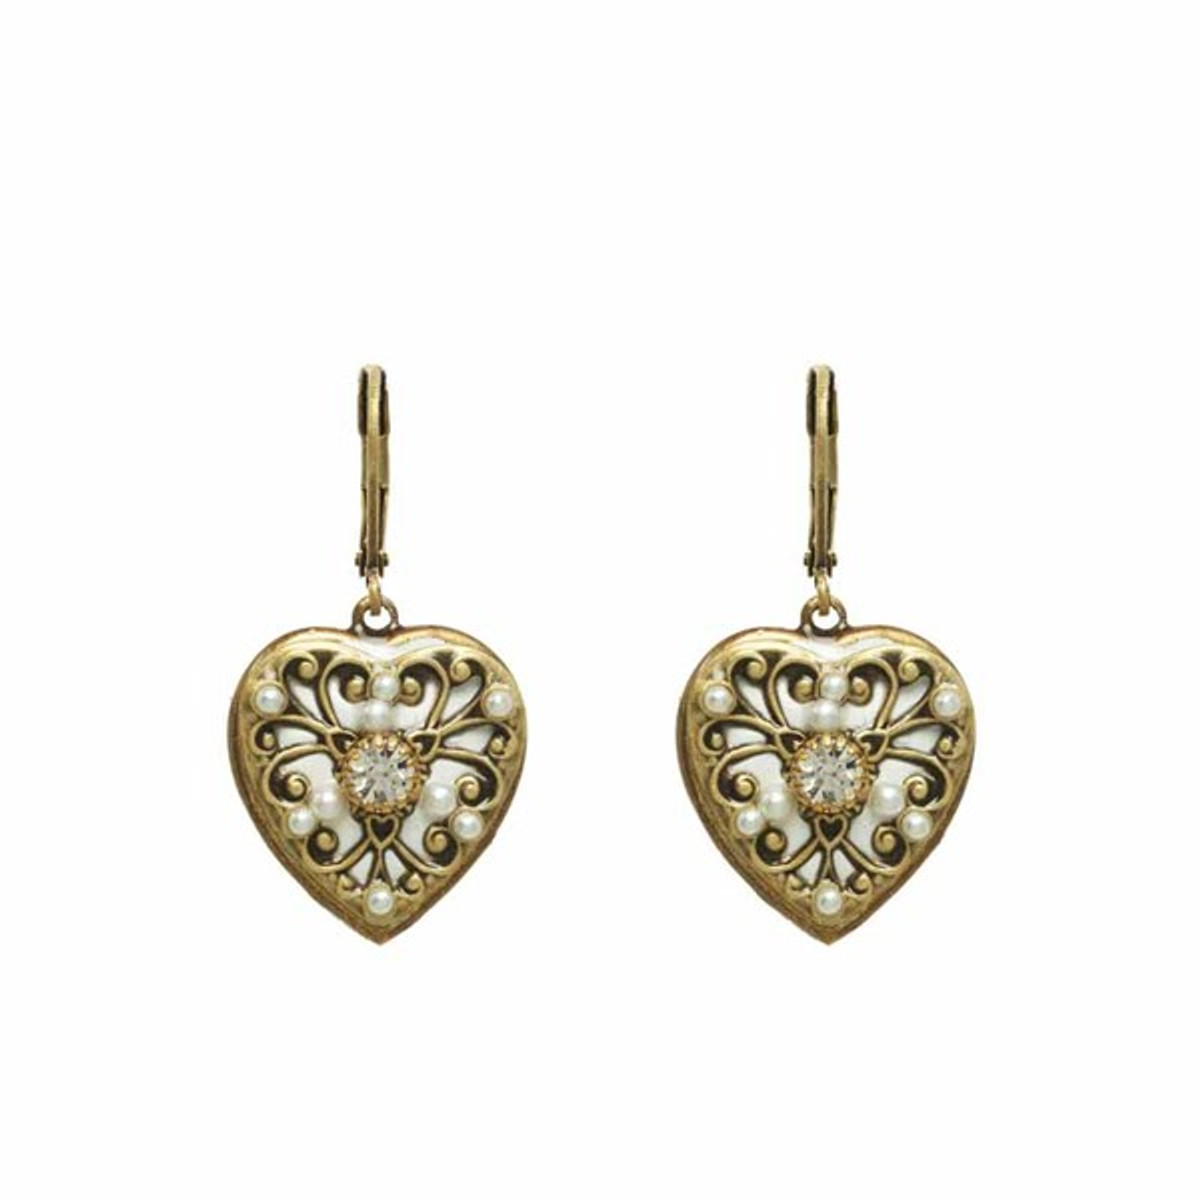 White Michal Golan Jewelry Heart Earrings